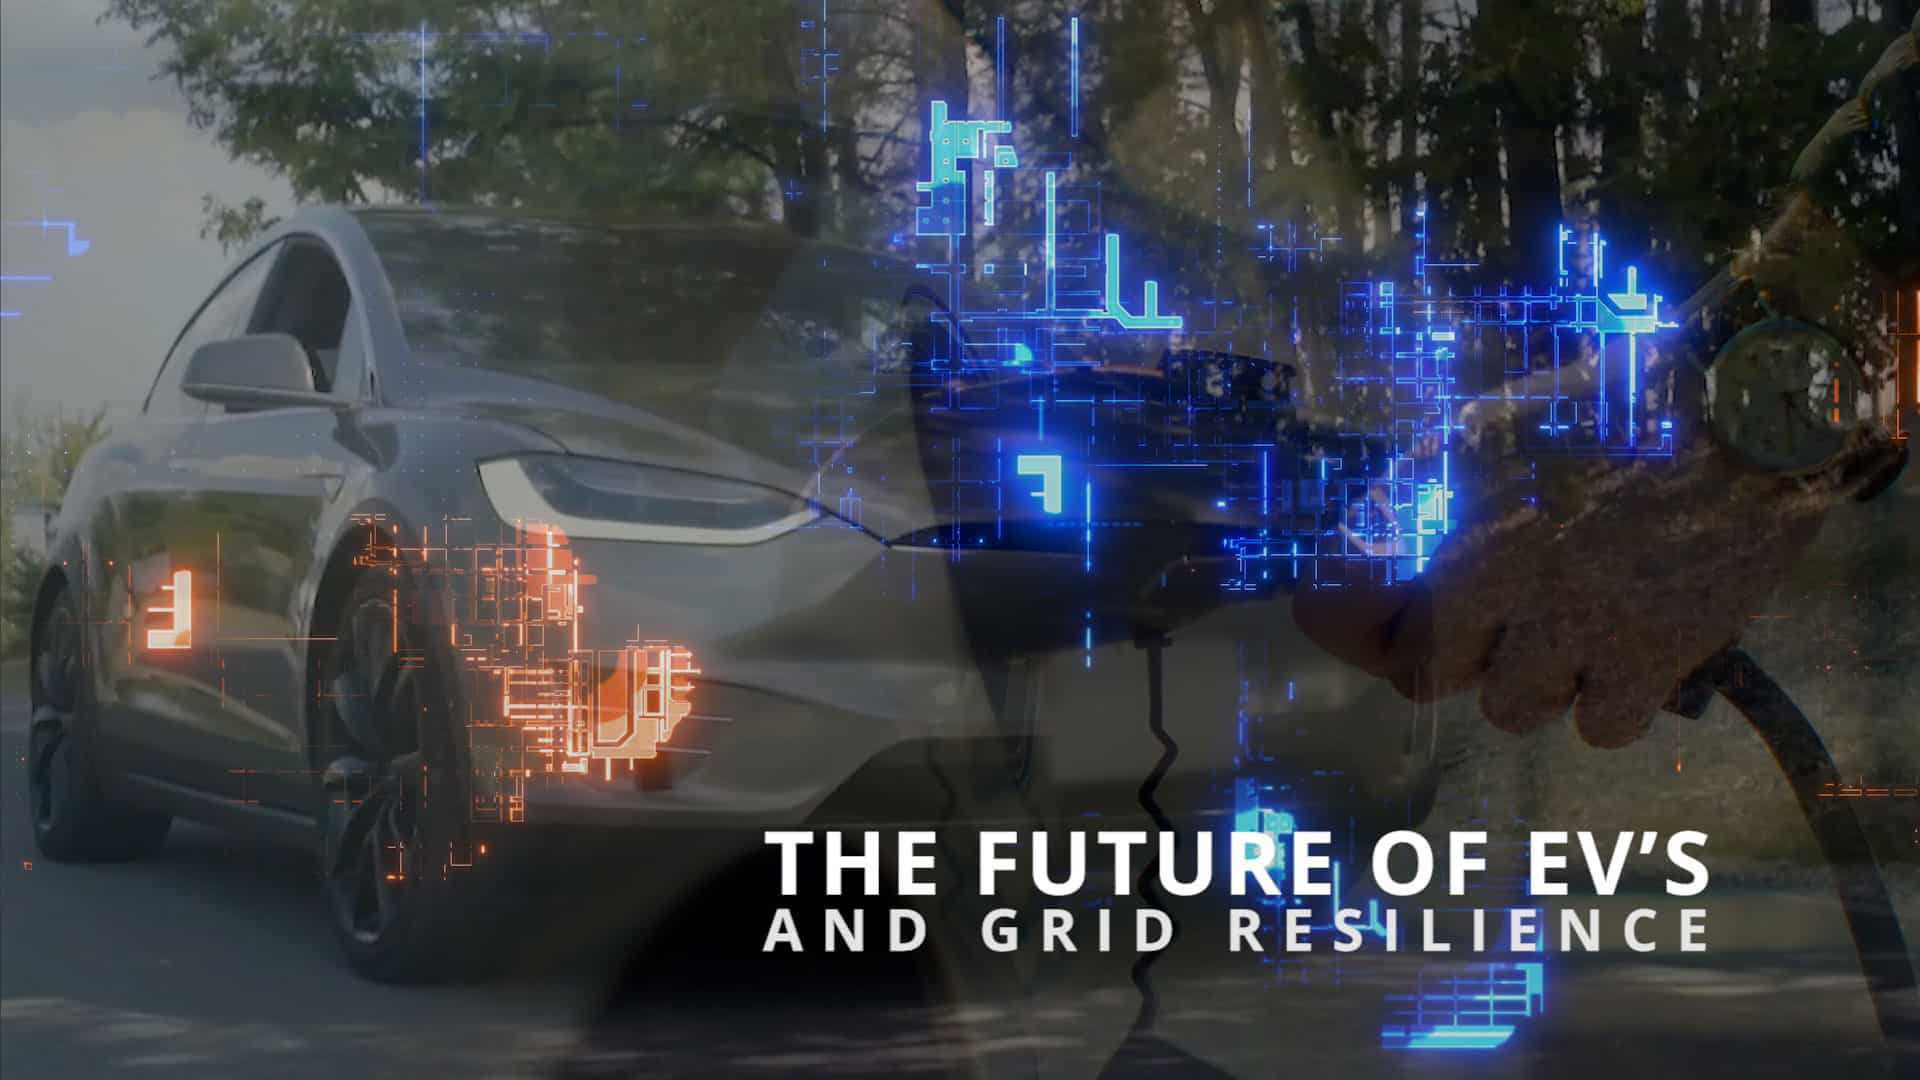 The Future of EV's and Grid Resilience motion graphic